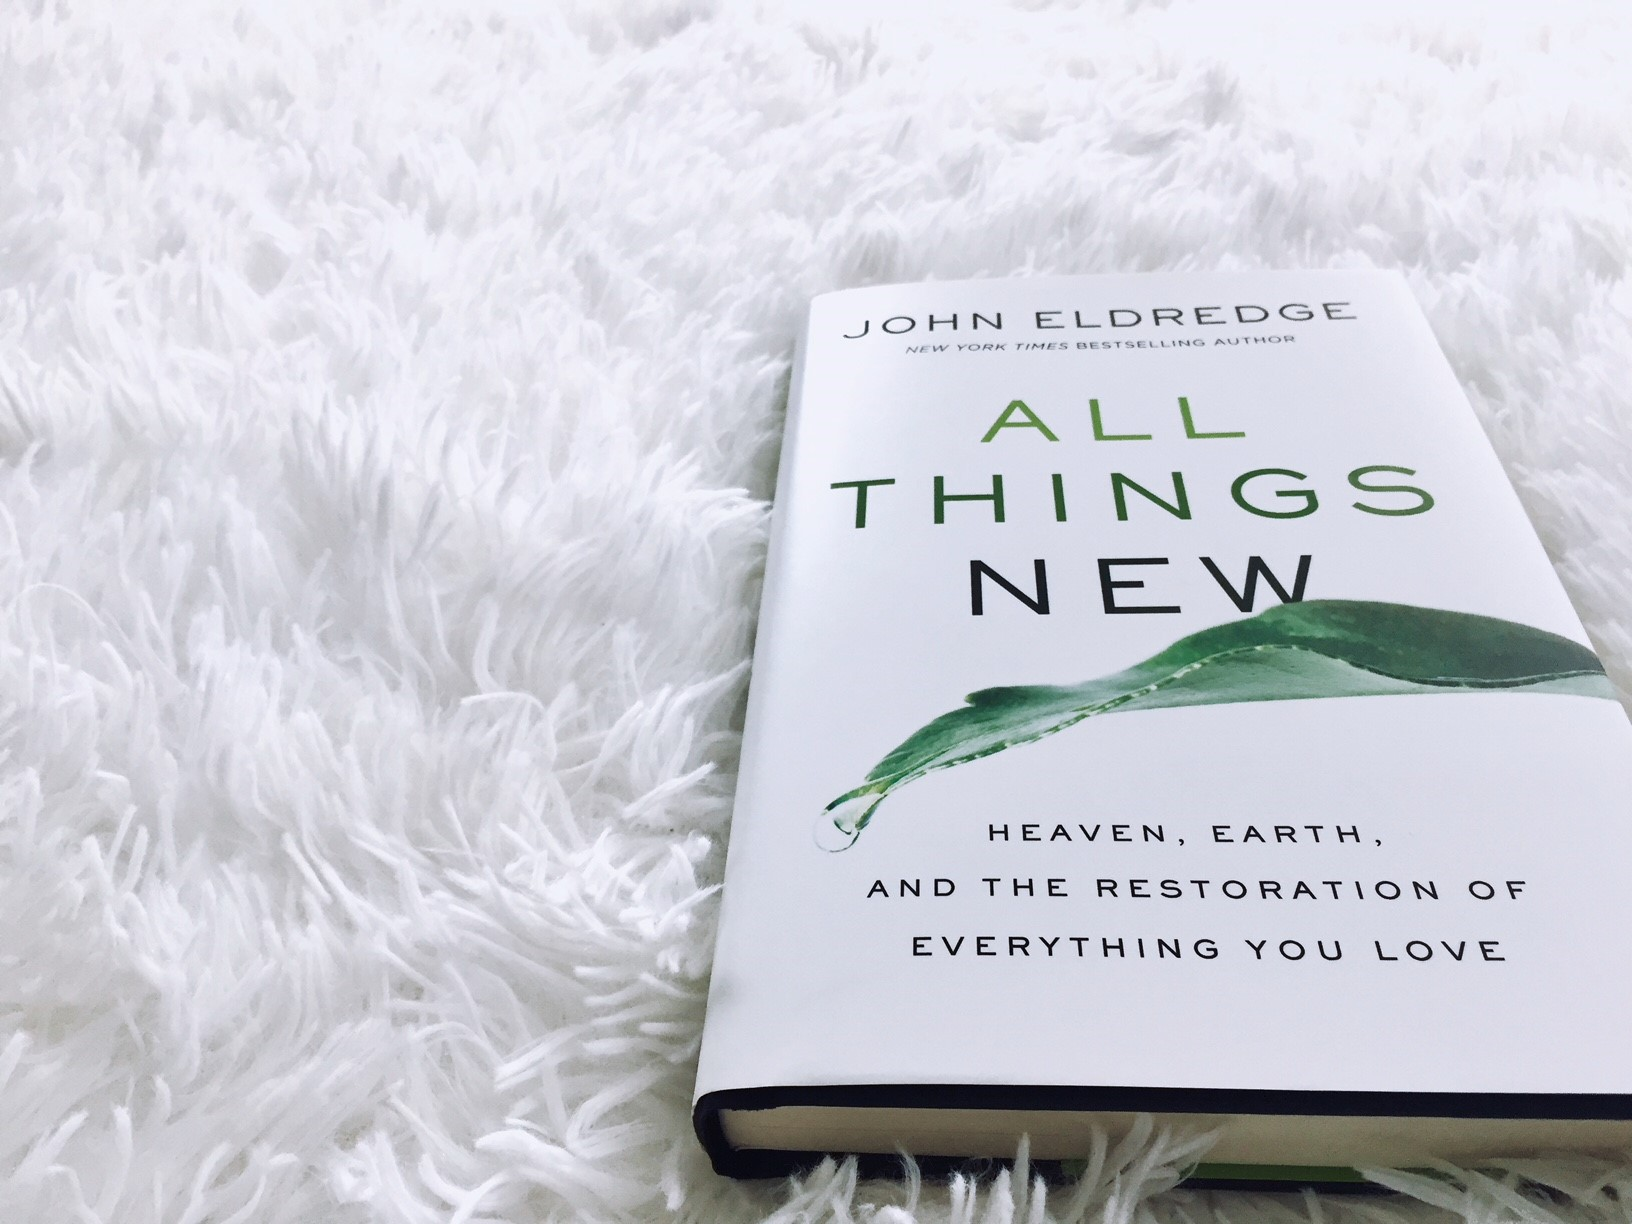 All Things New: Heaven, Earth, and the Restoration of Everything You Love by John Eldredge